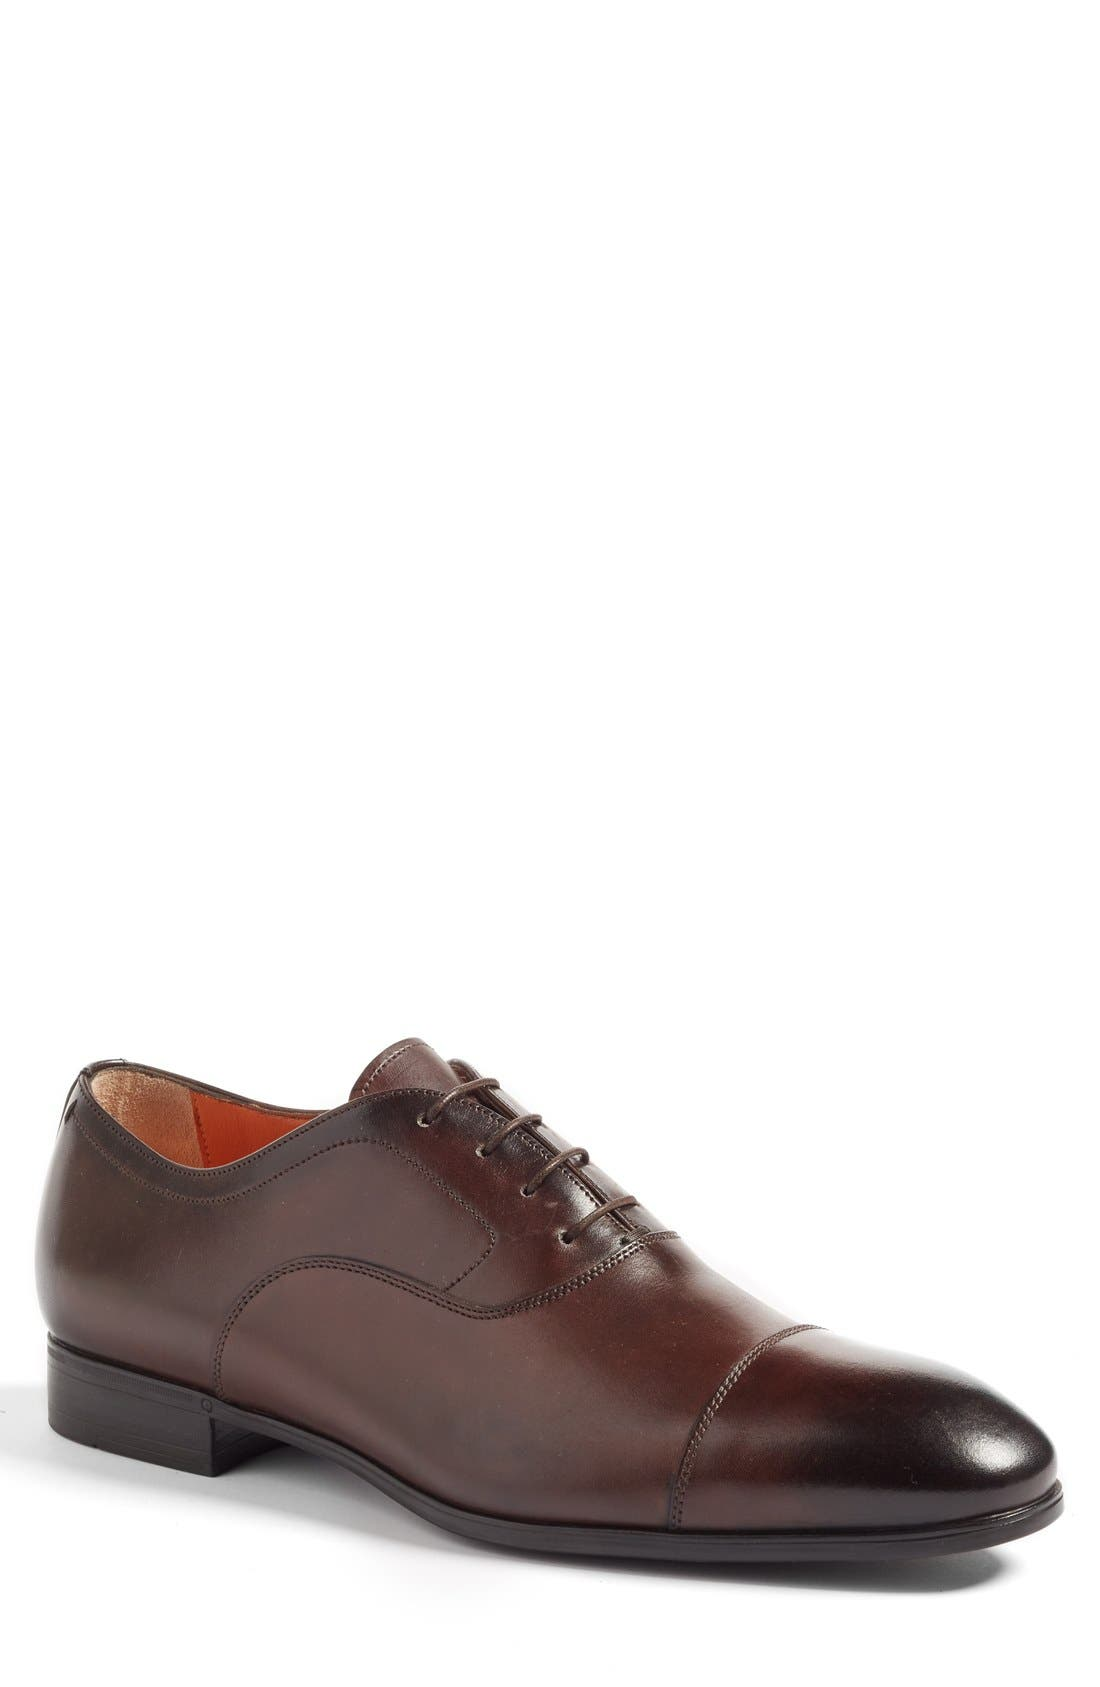 Santoni Ethan Cap Toe Oxford (Men)